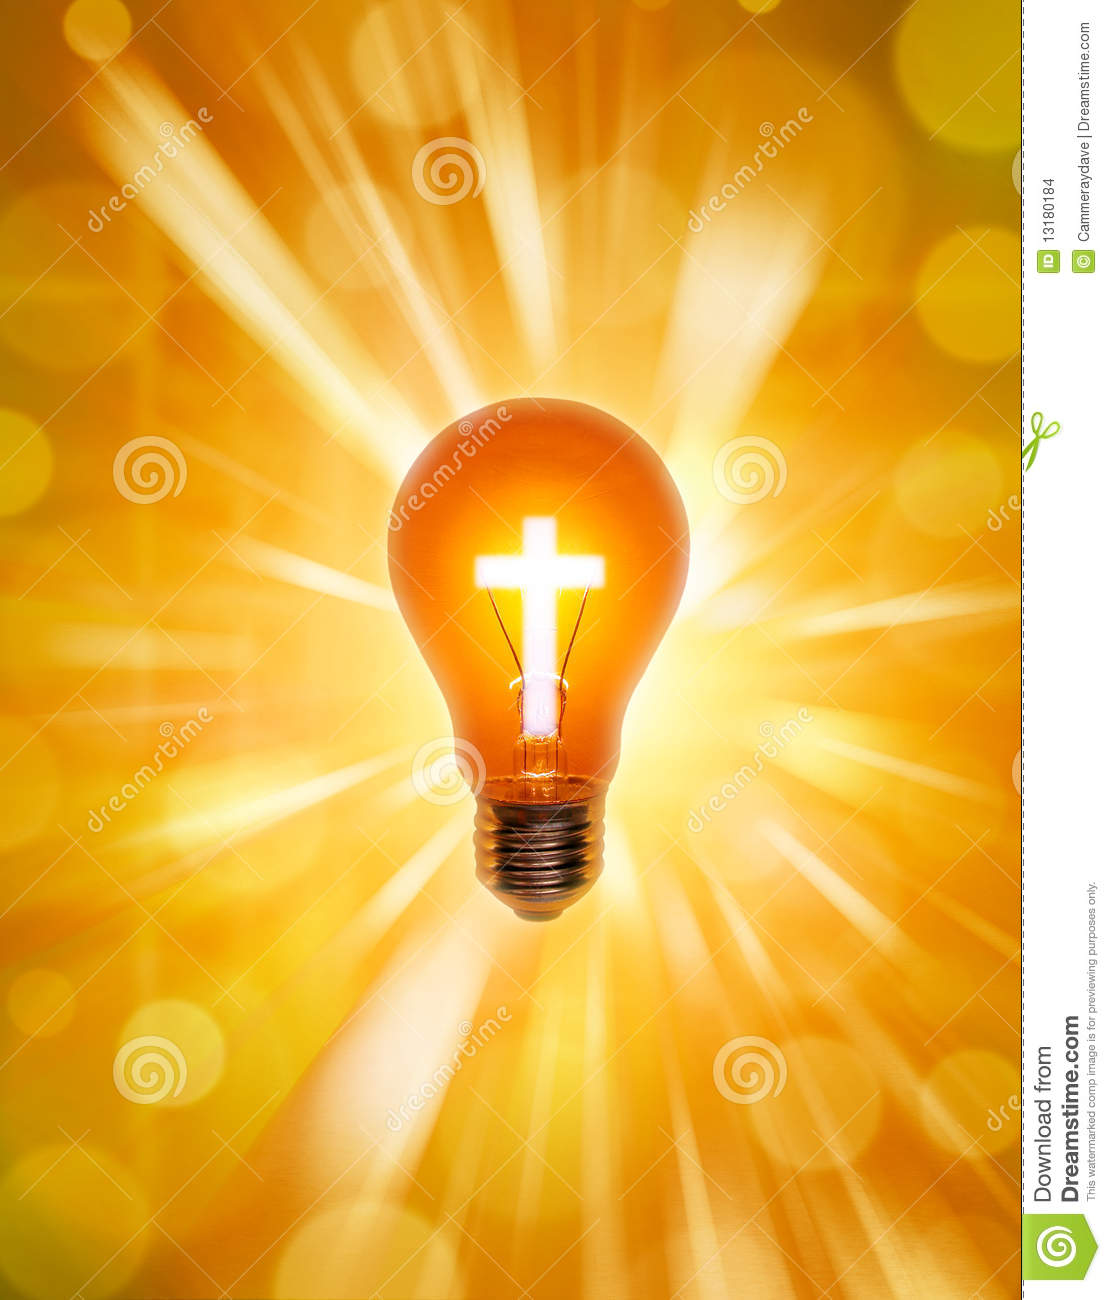 Religion Cross Light Bulb Christianity Stock Images - Image: 13180184